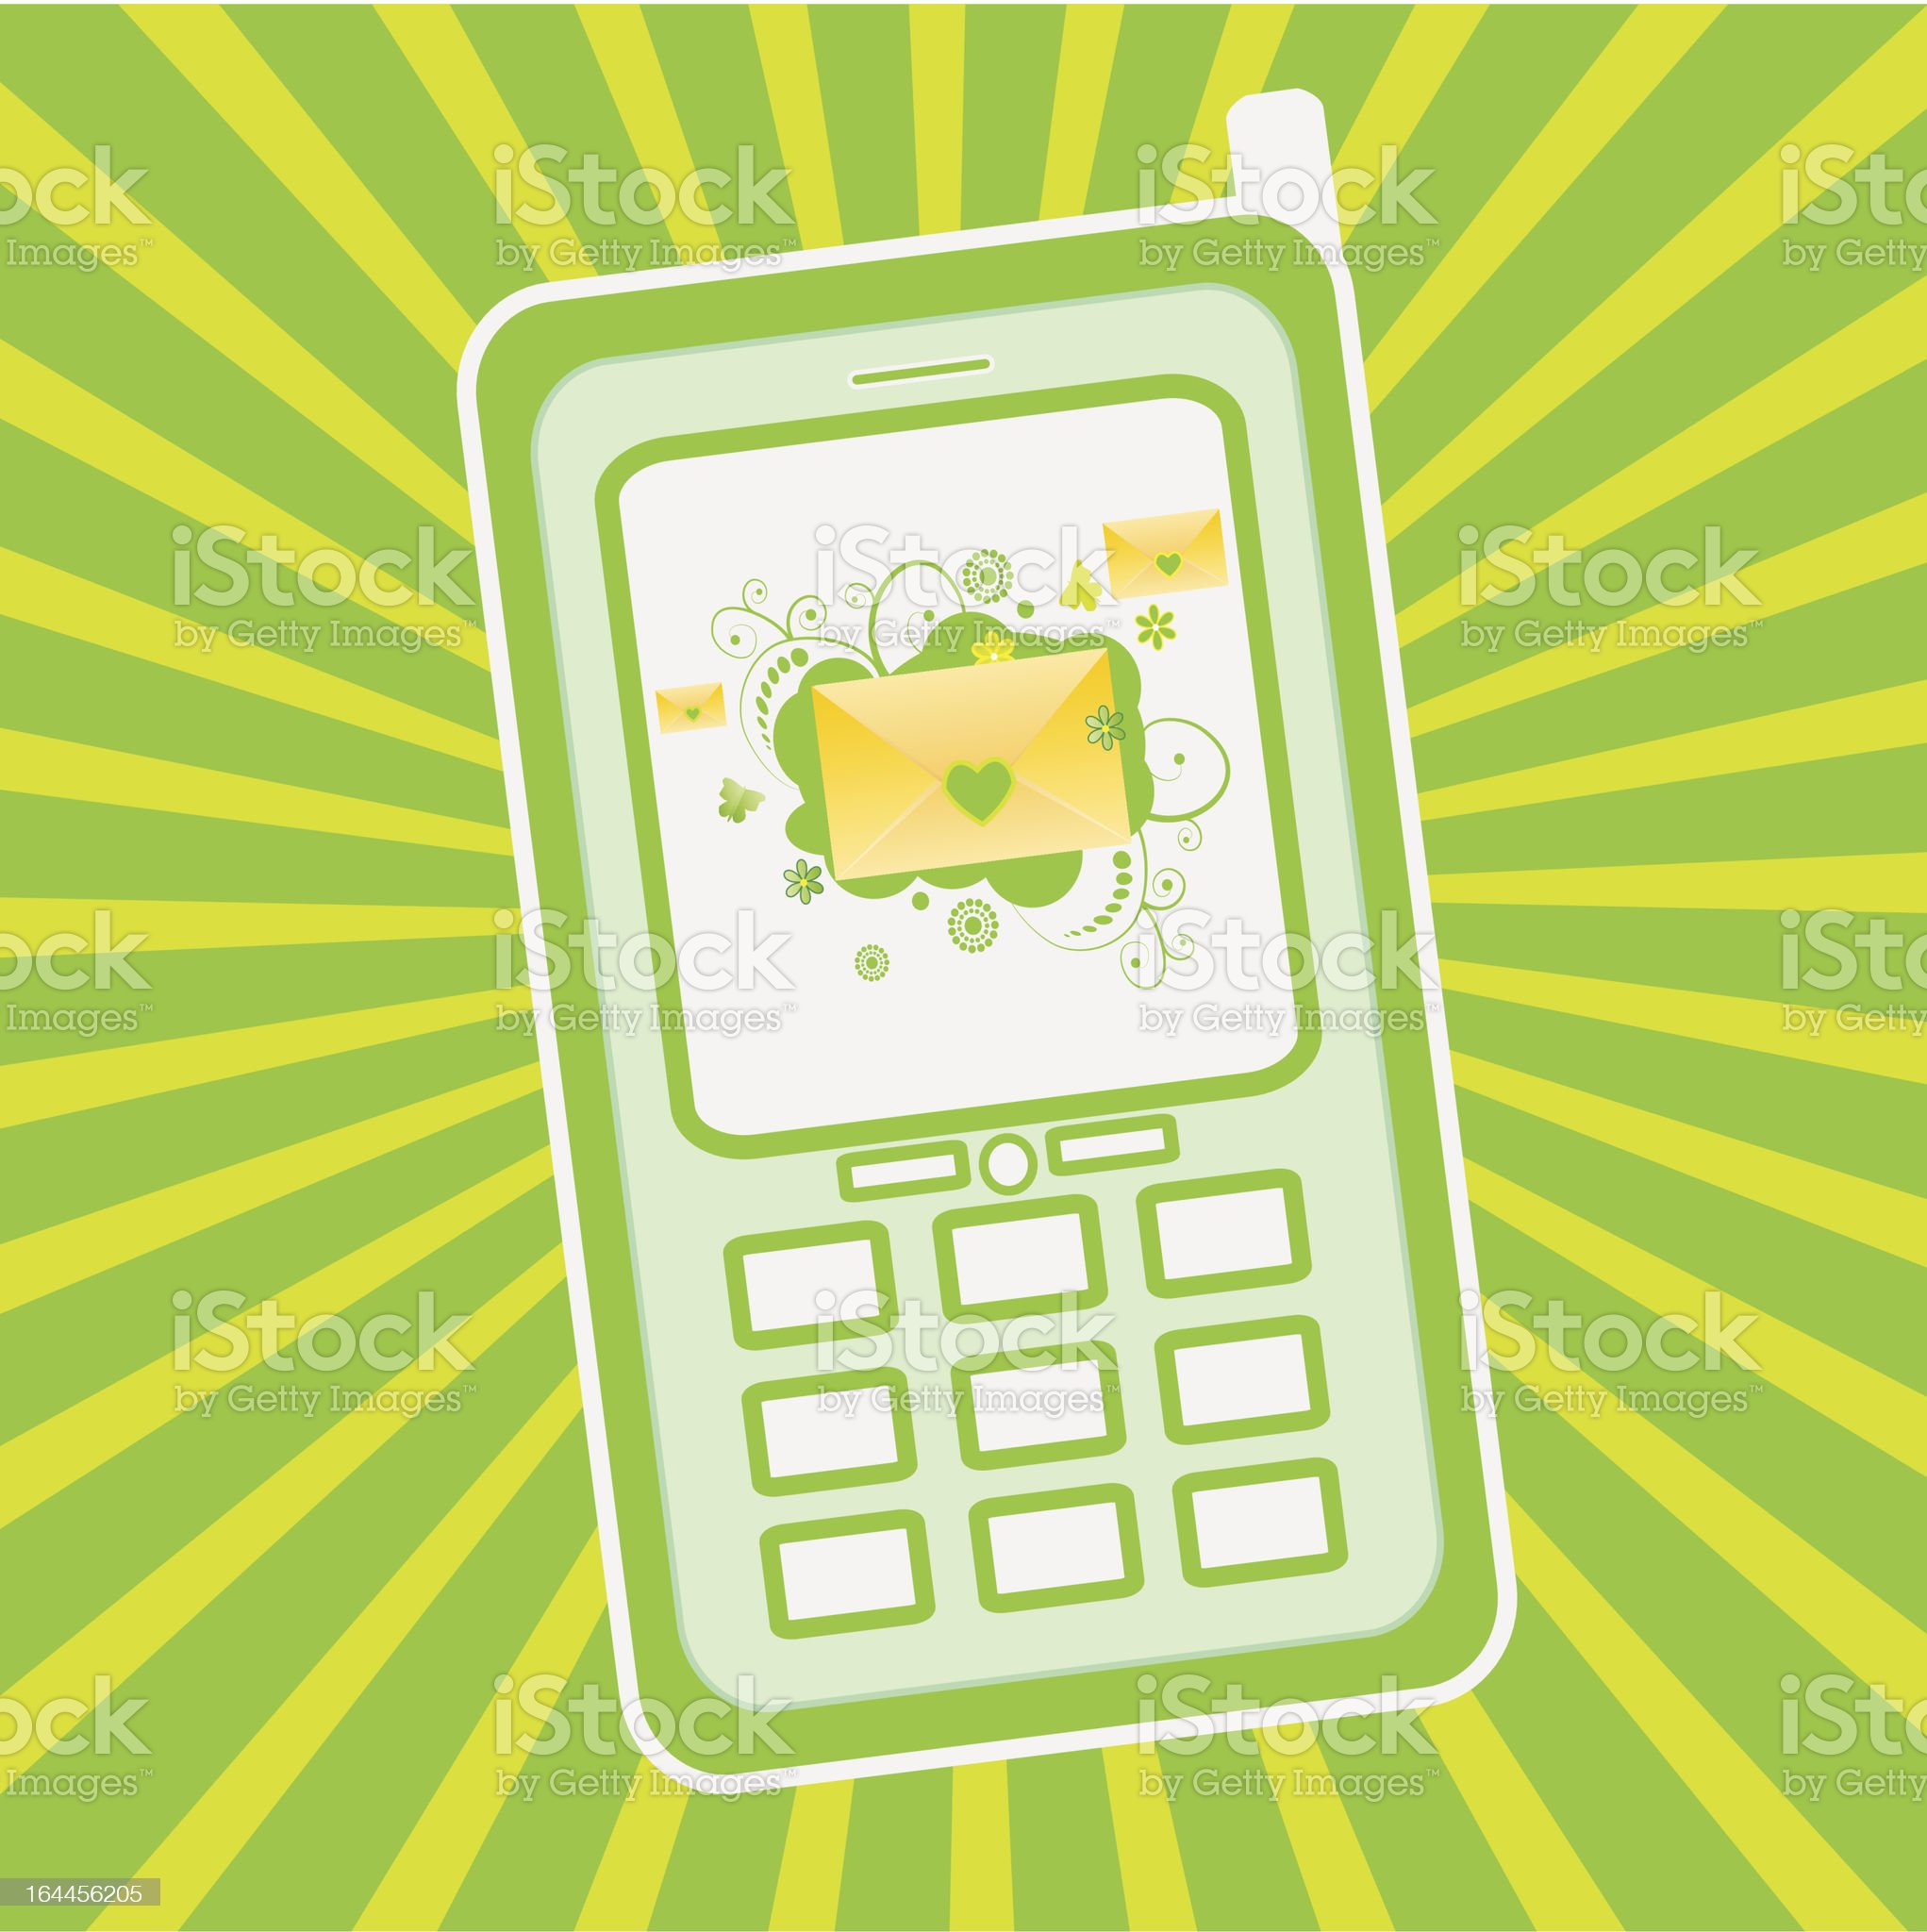 Cellphone royalty-free stock vector art